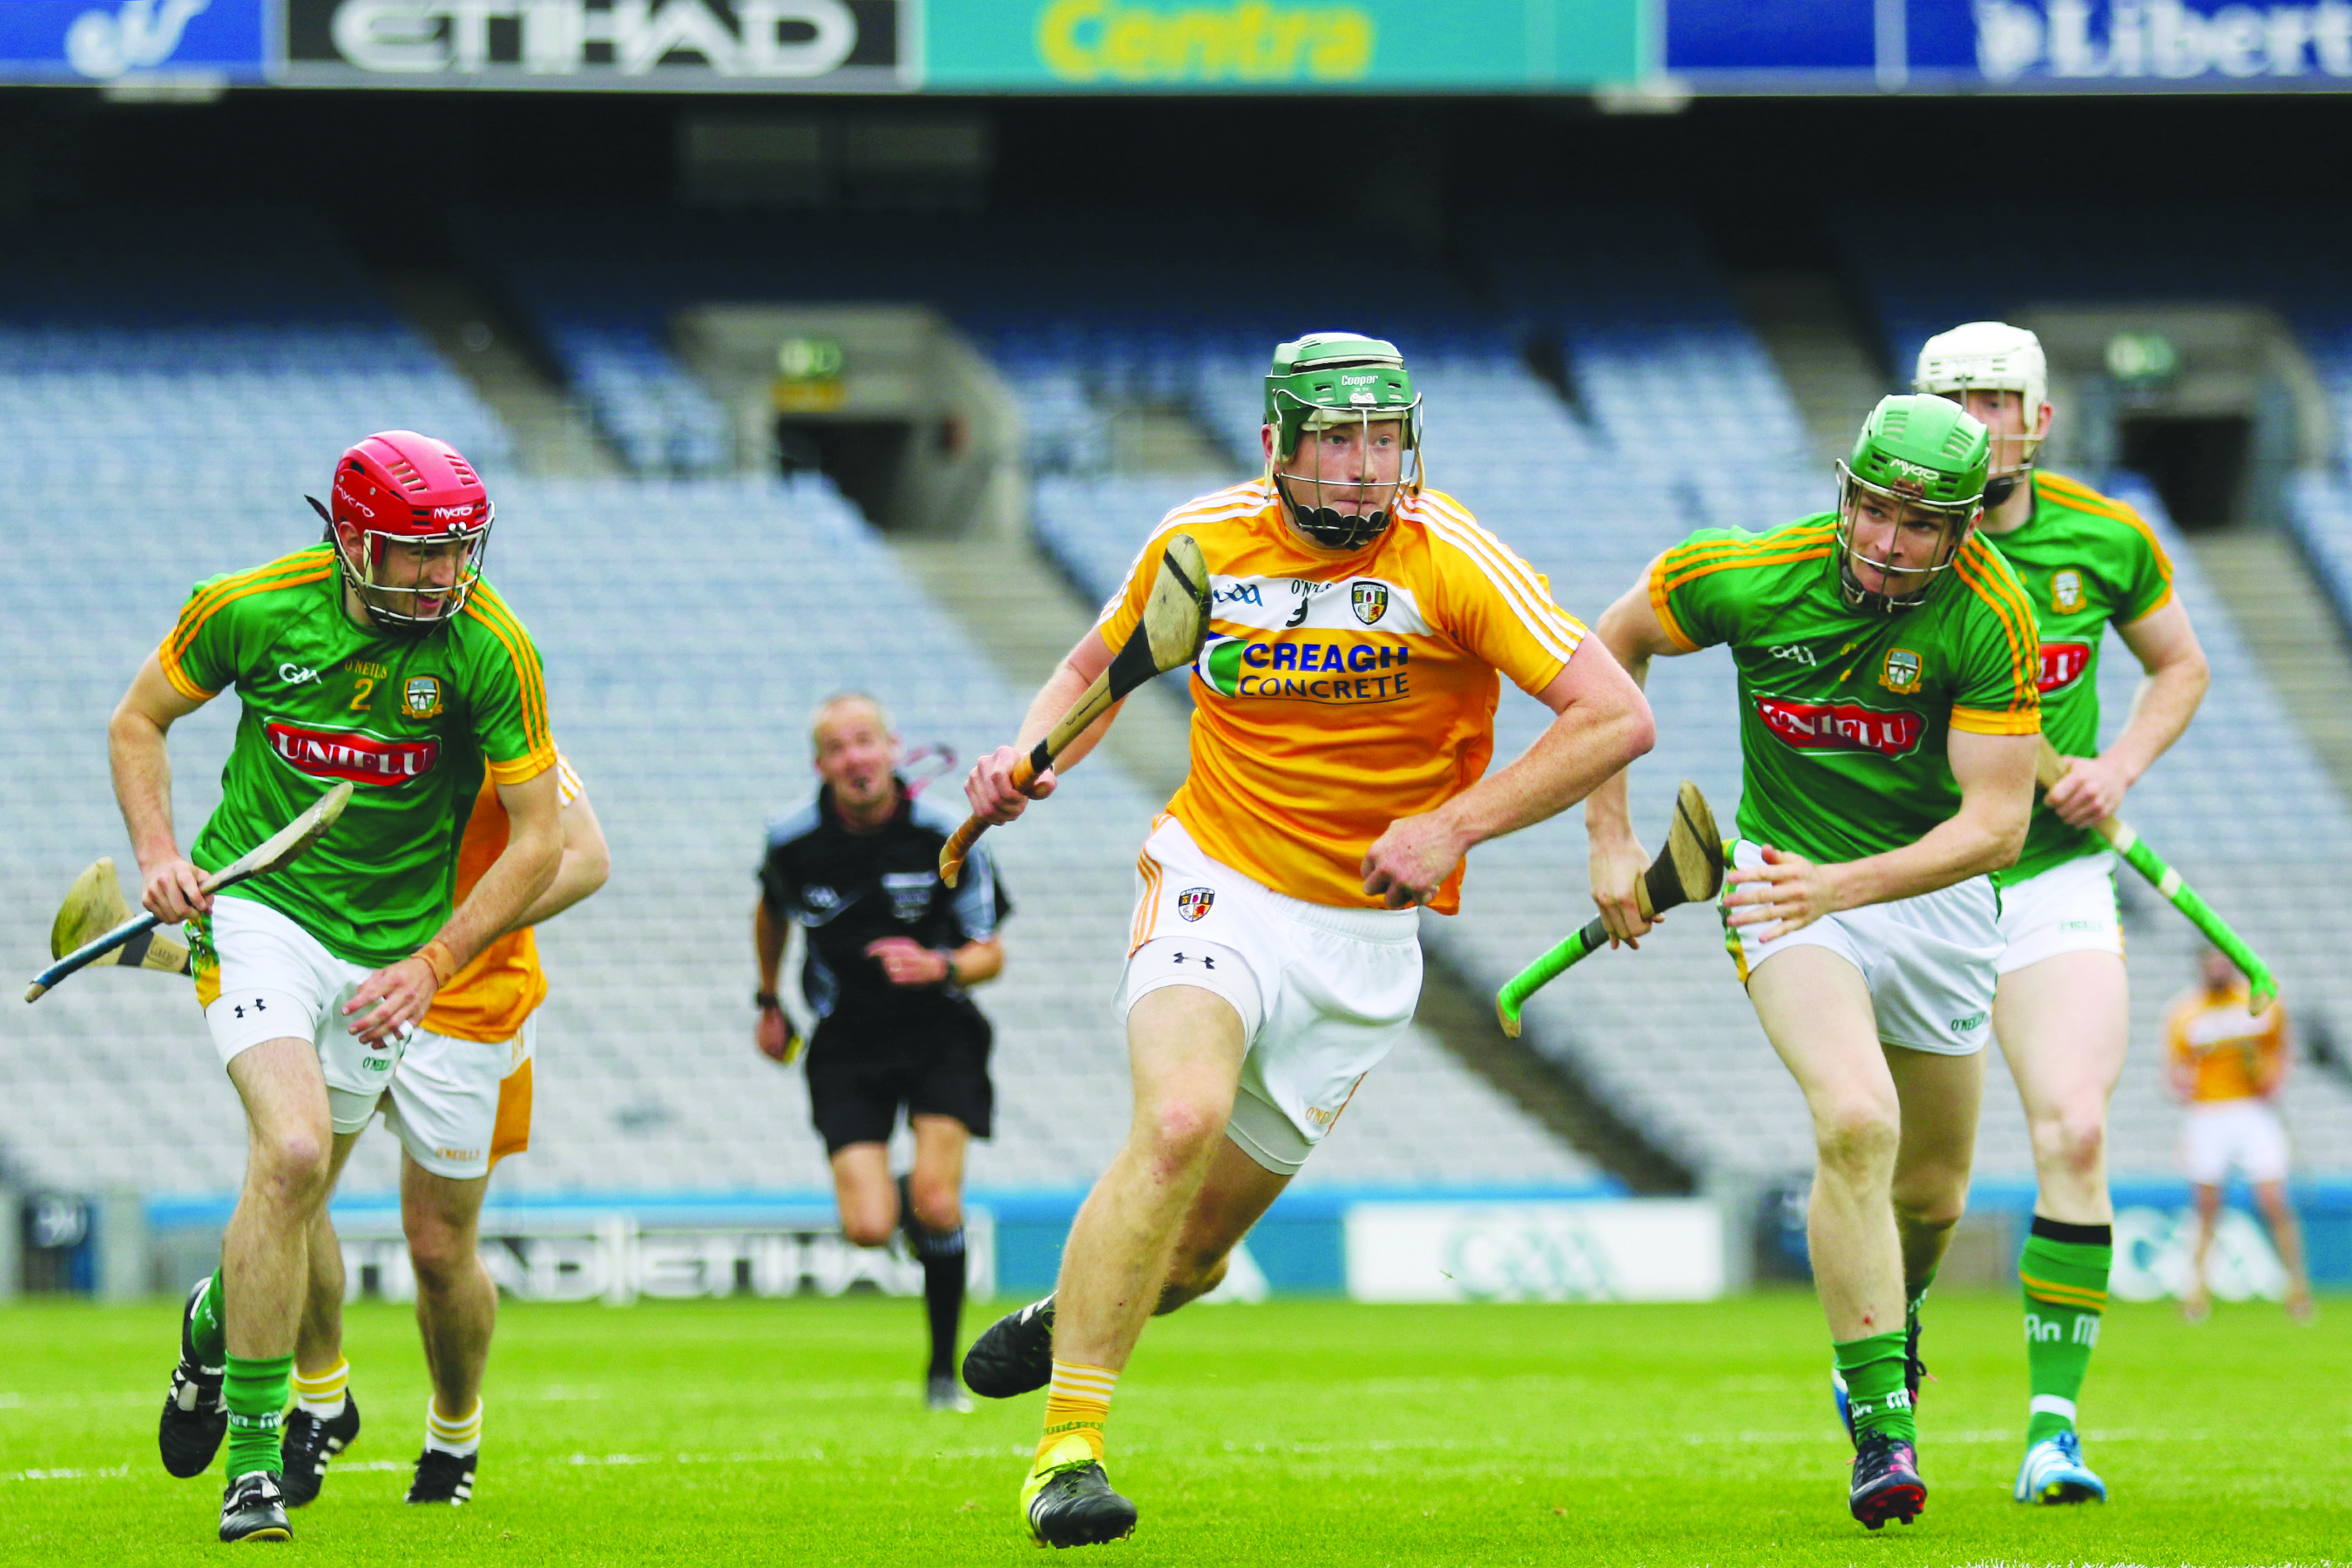 Niall McKenna, pictured in action against Meath in the Christy Ring Cup final replay last year in Croke Park, has urged Antrim to make a statement of intent against London in Sunday's National Hurling League opener in Corrigan Park